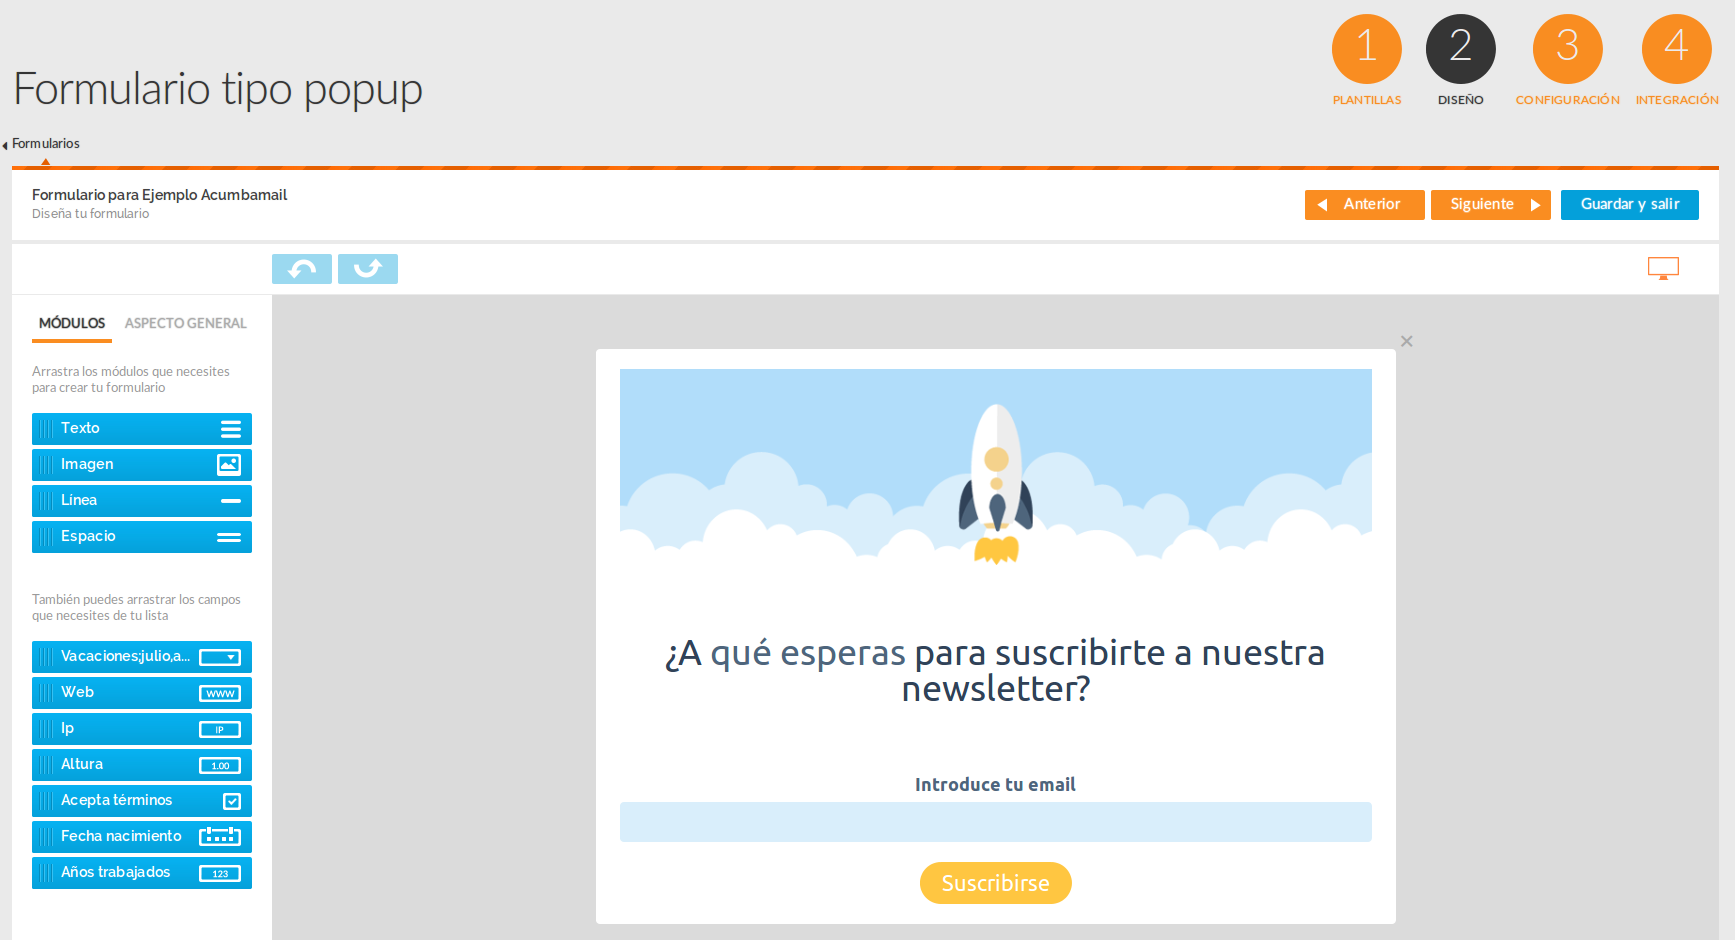 Editar un formulario de email marketing